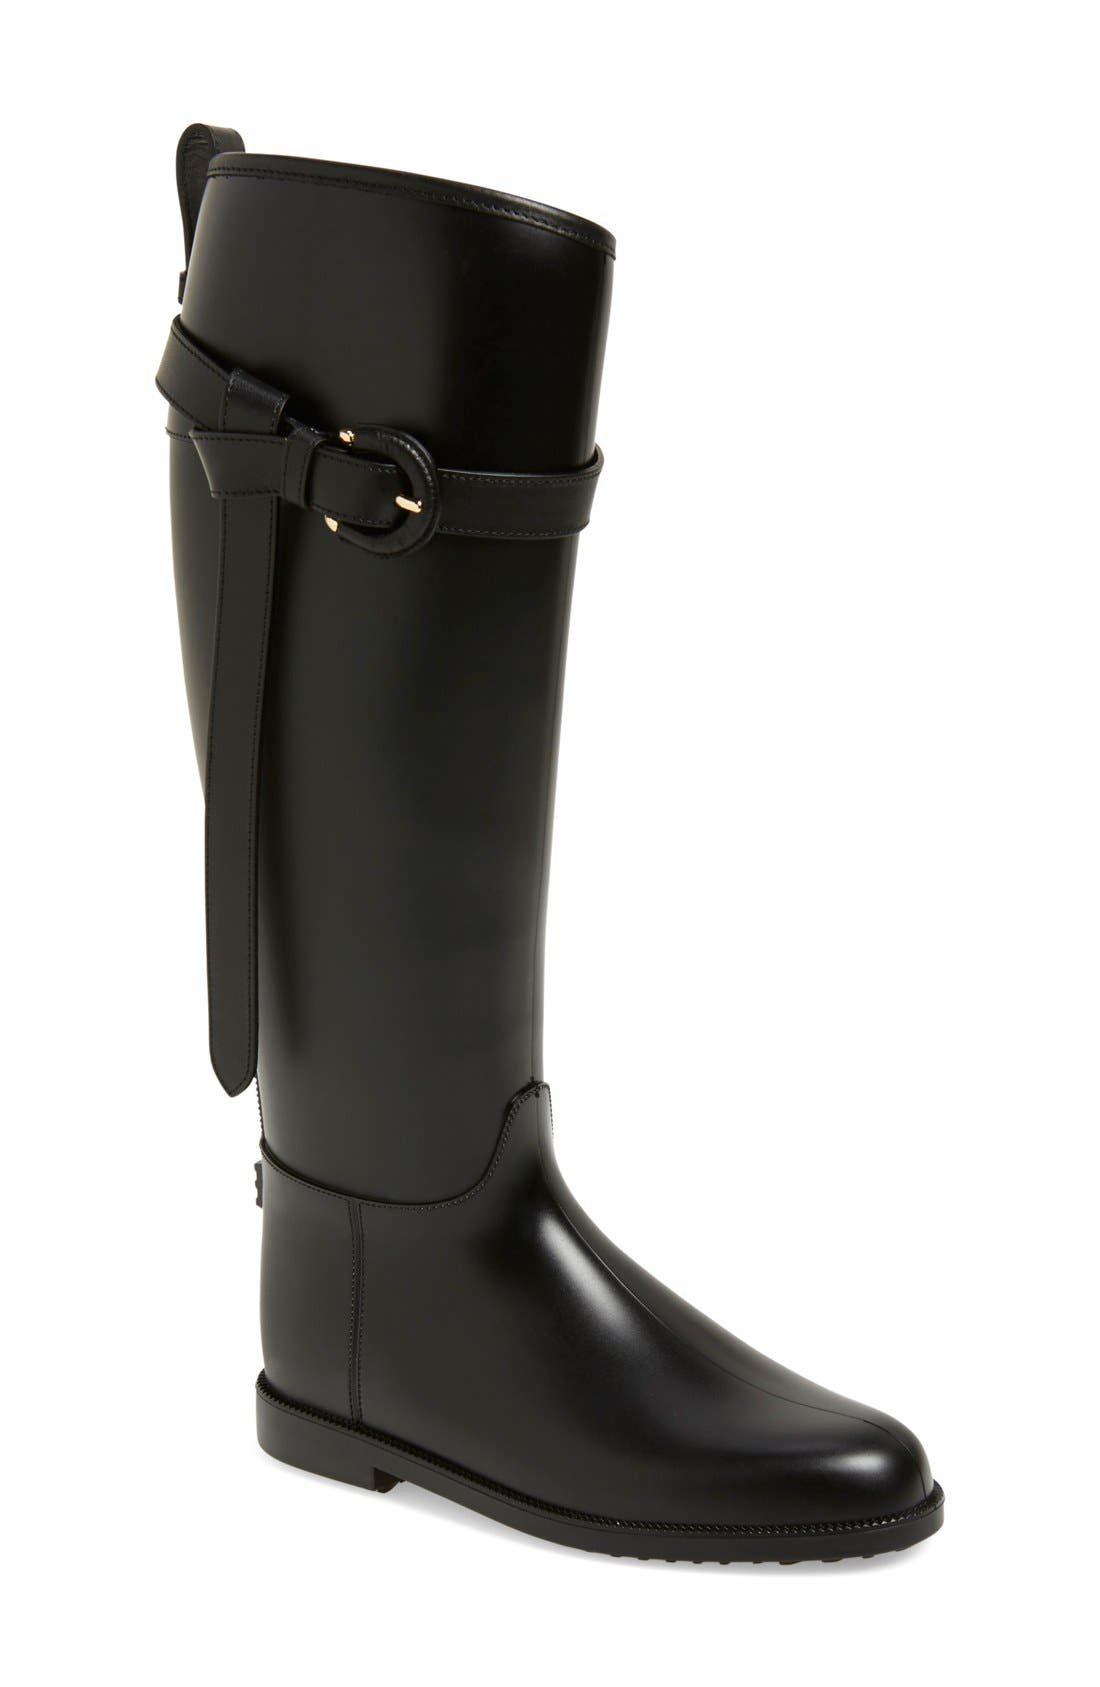 Alternate Image 1 Selected - Burberry Roscot Waterproof Riding Boot (Women)